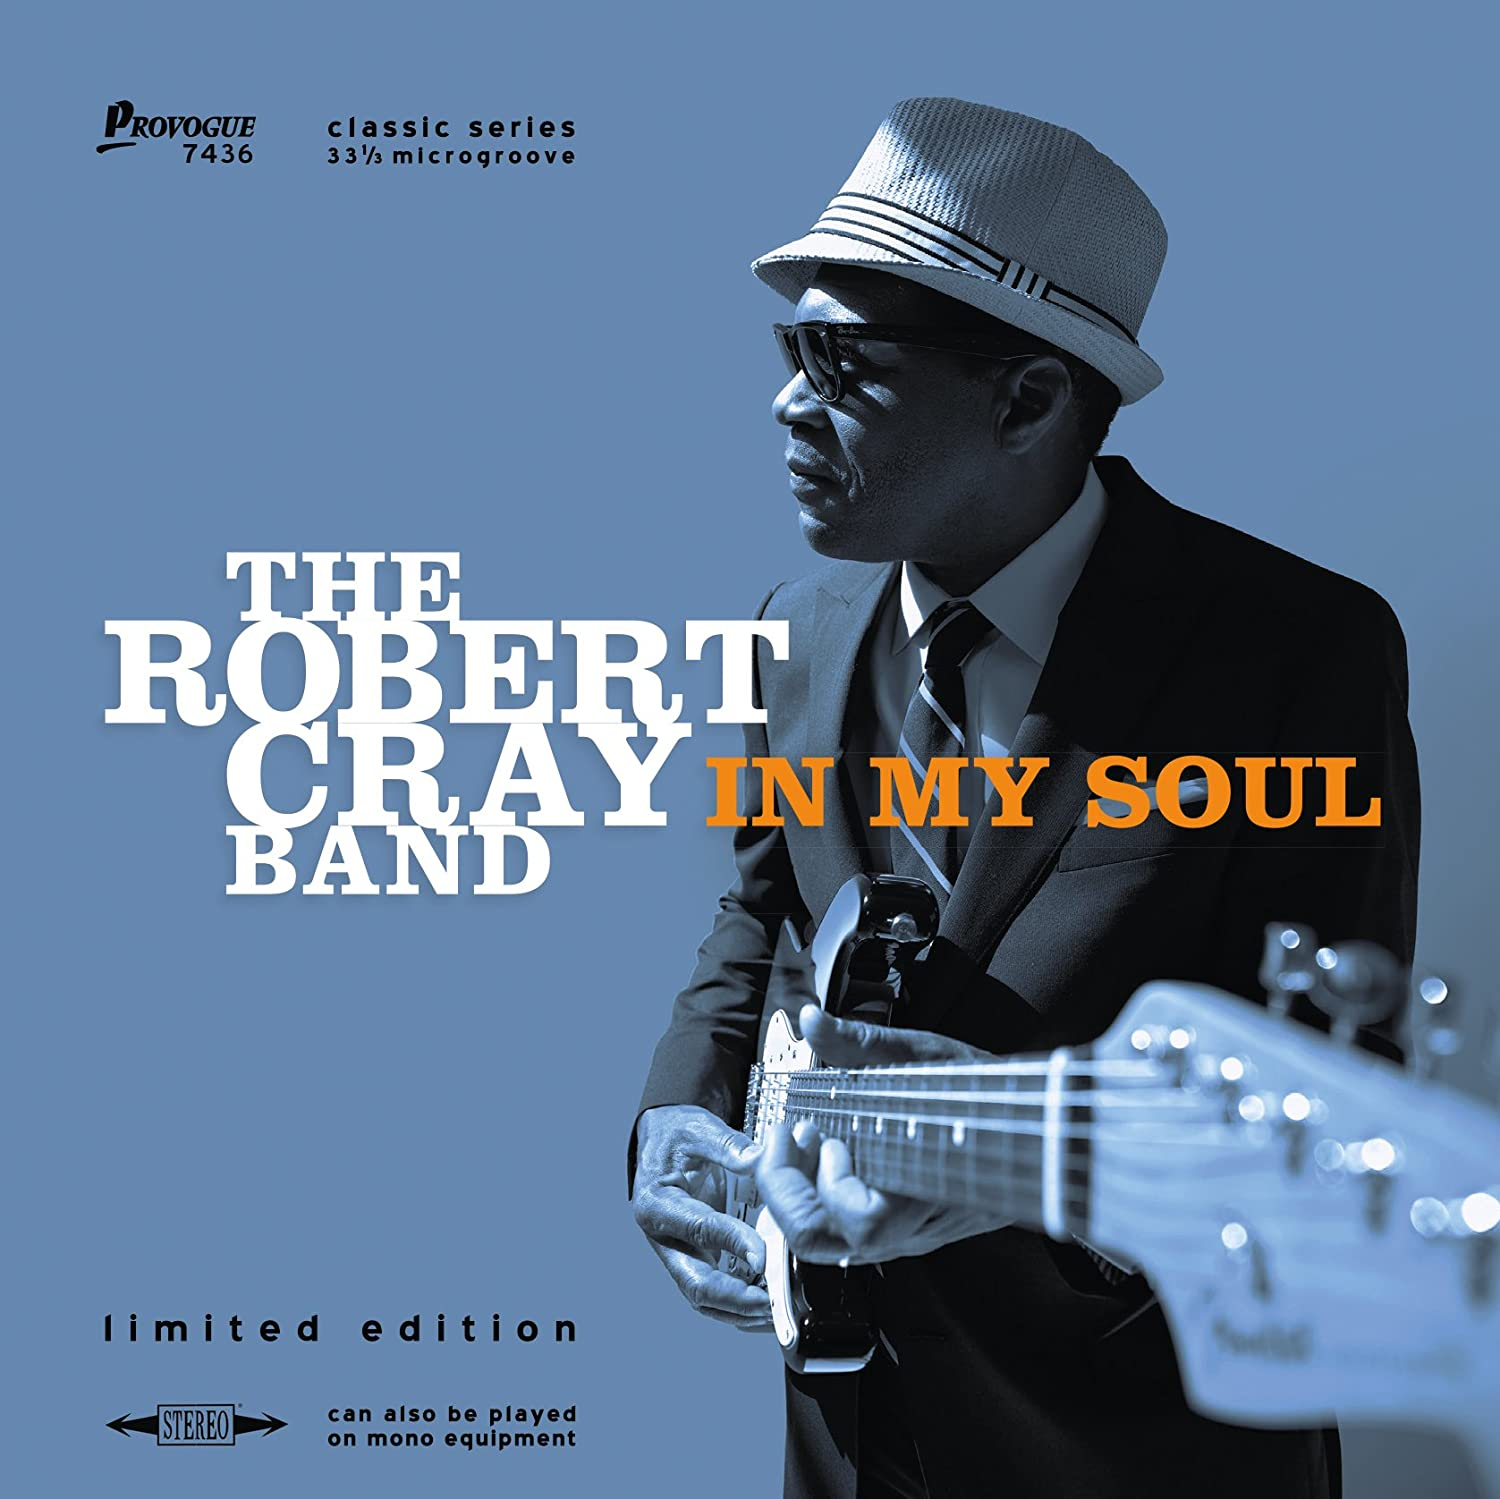 The Robert Cray Band - In My Soul 71chzL4UWzL._SL1500_